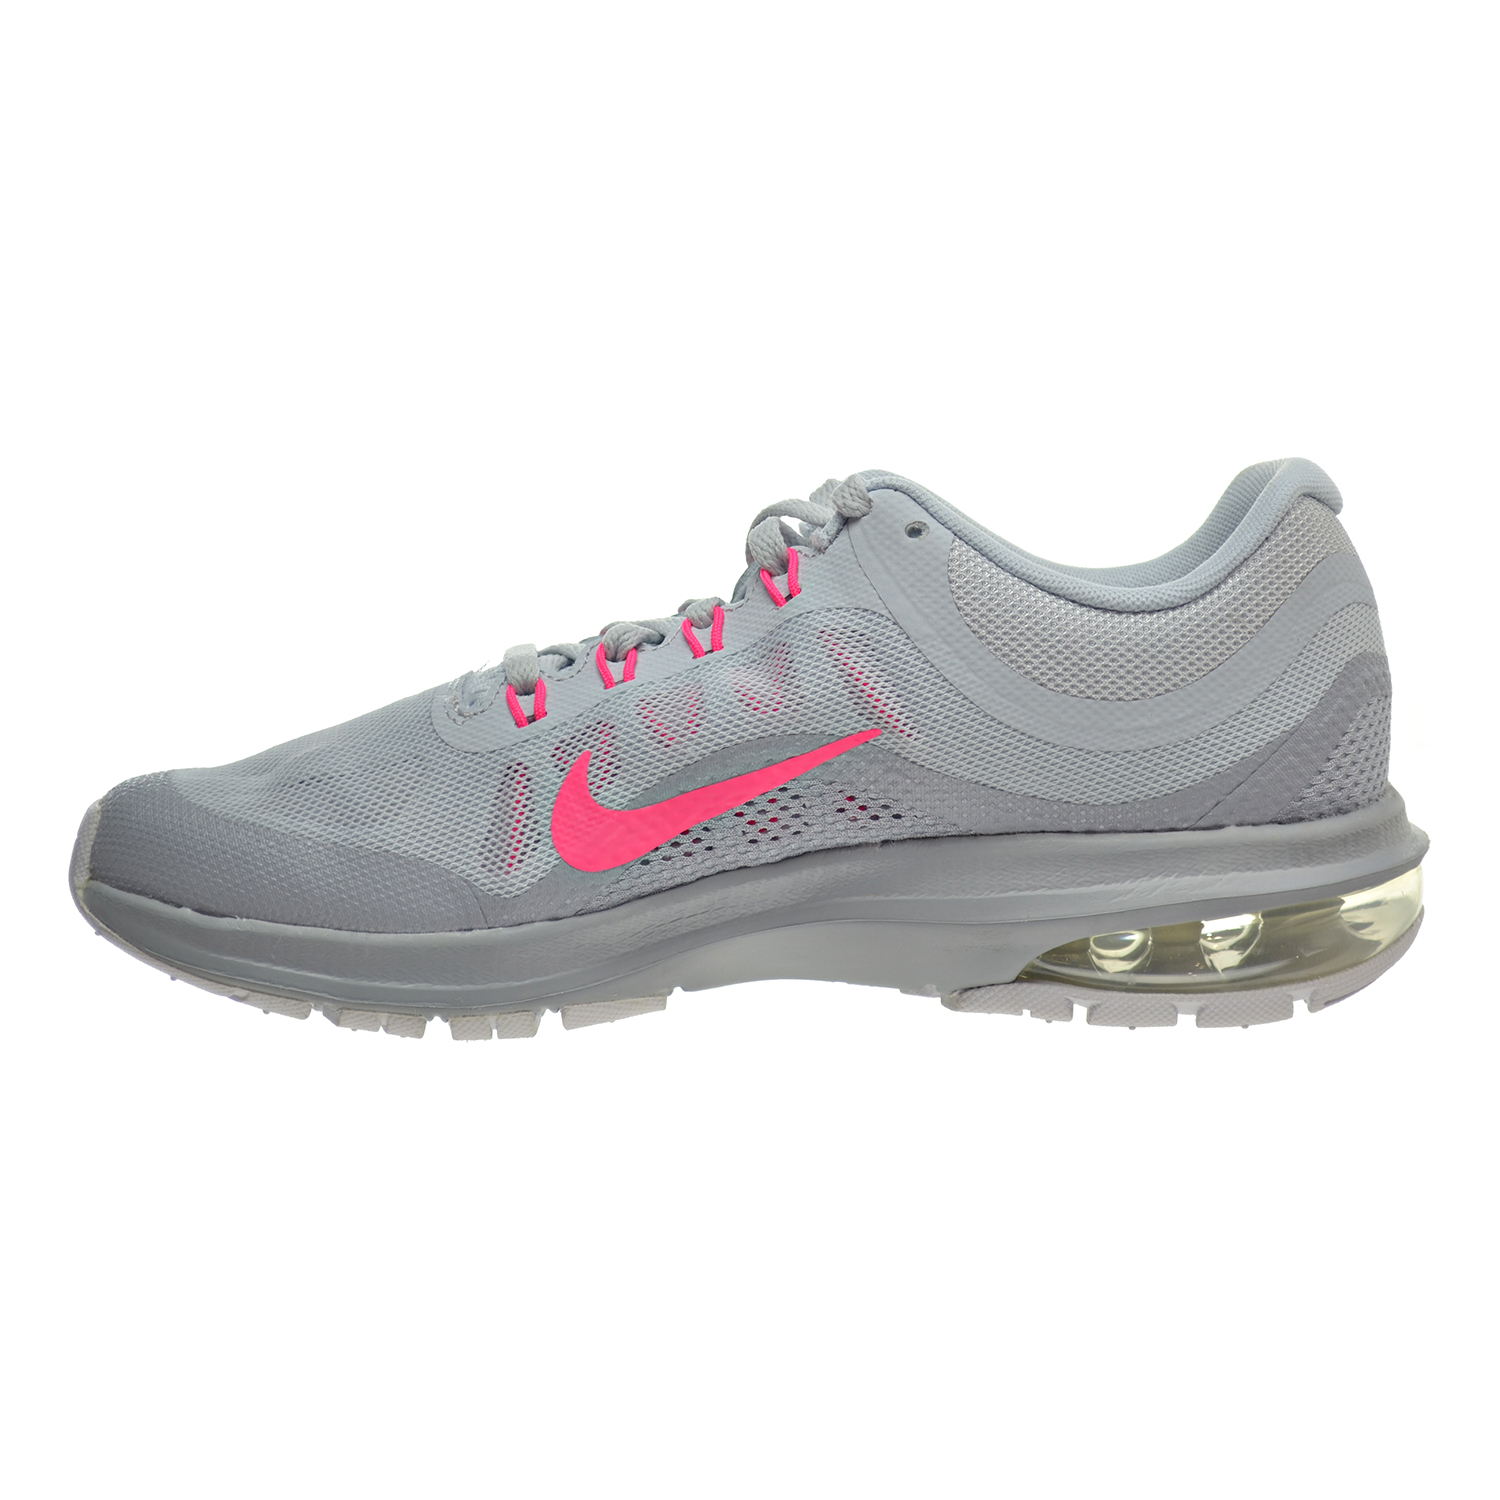 finest selection 5a477 afd26 Nike - Nike Air Max Dynasty 2 (GS) Big Kid s Shoes Pure Platinum Hyper Pink  859577-001 - Walmart.com